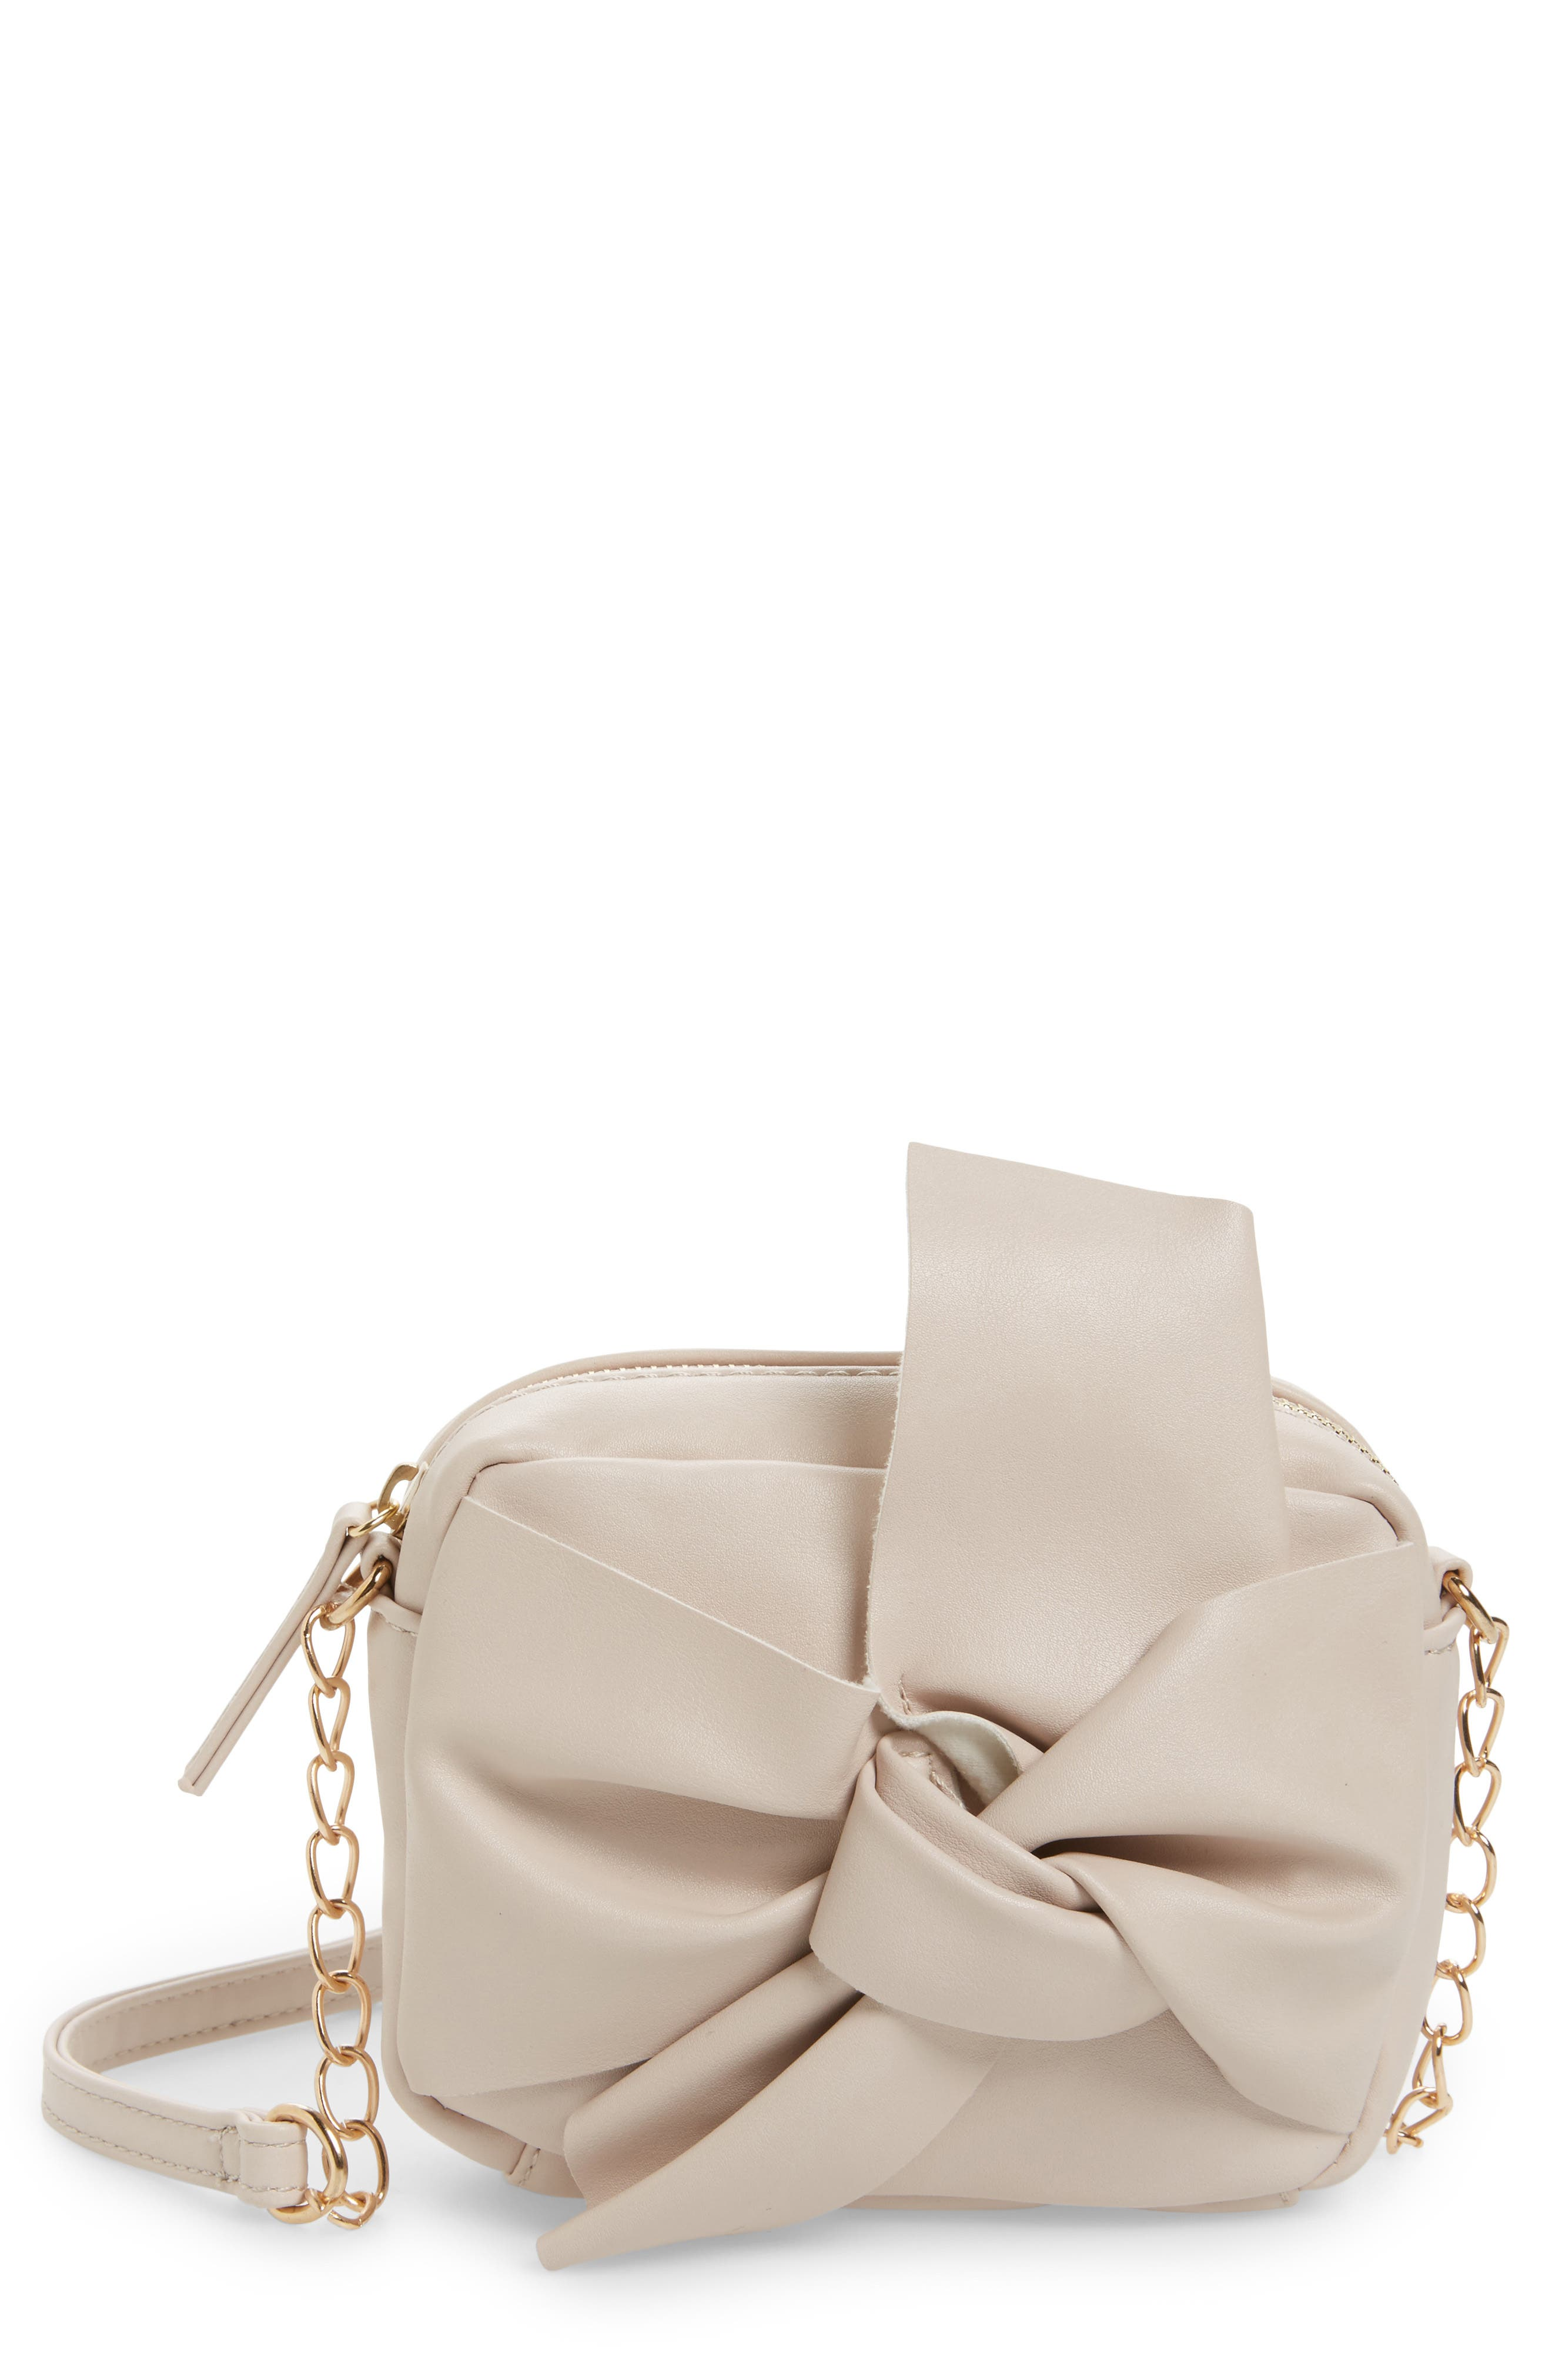 Alternate Image 1 Selected - OMG Knotted Bow Faux Leather Crossbody Bag (Big Girls)